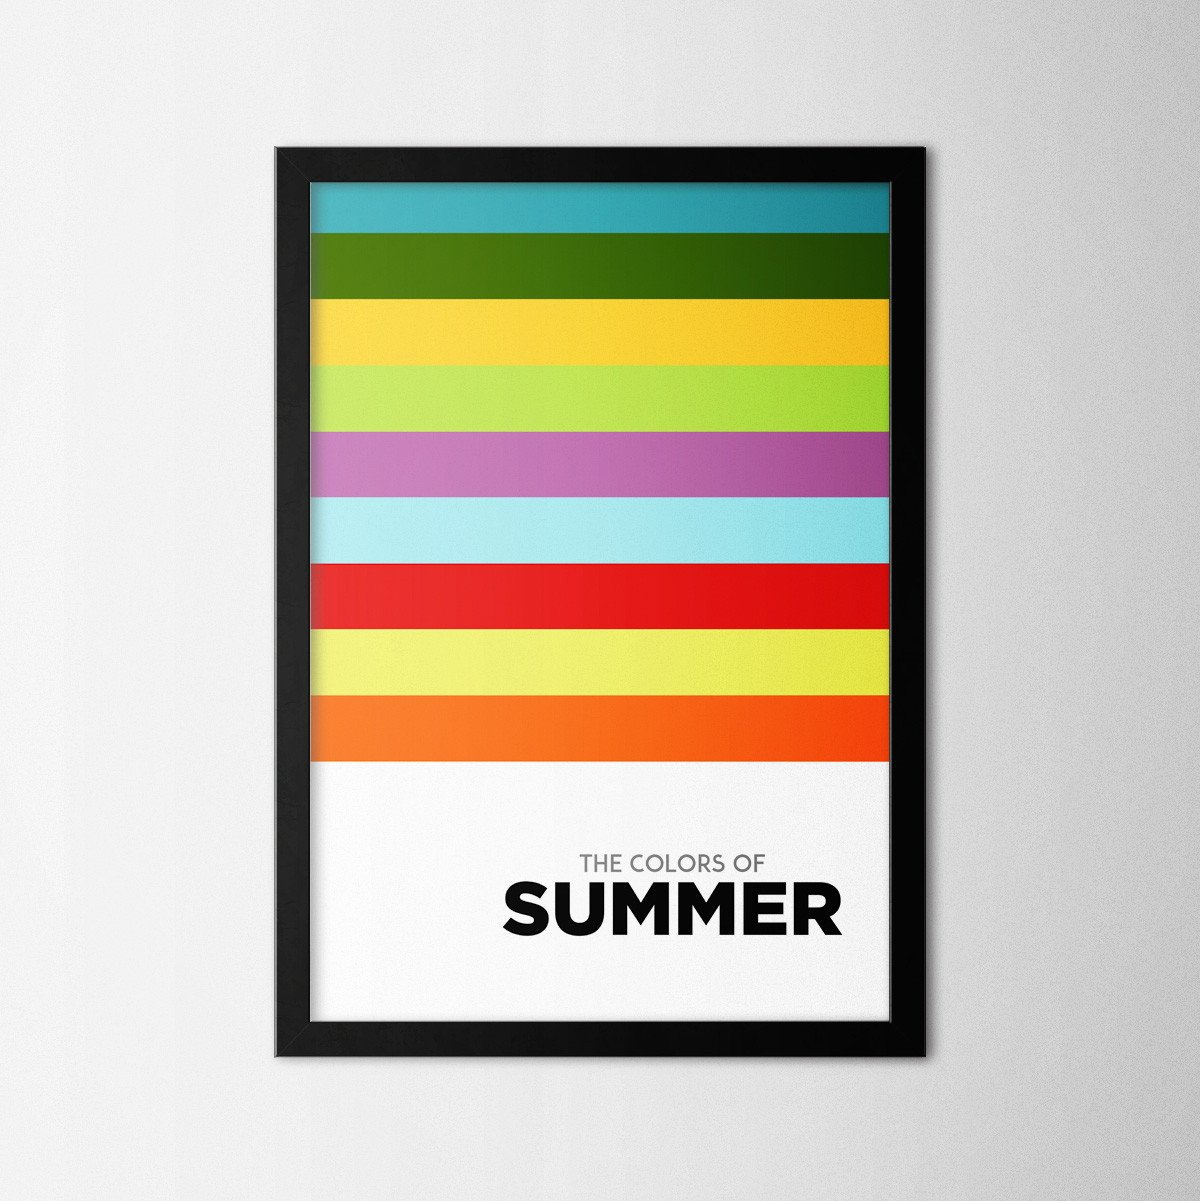 Colors of Seasons - Summer - Northshire Art Prints - Poster - Dekorasyon - Ev Dekorasyonu - Dekorasyon Fikirleri - Hediyelik